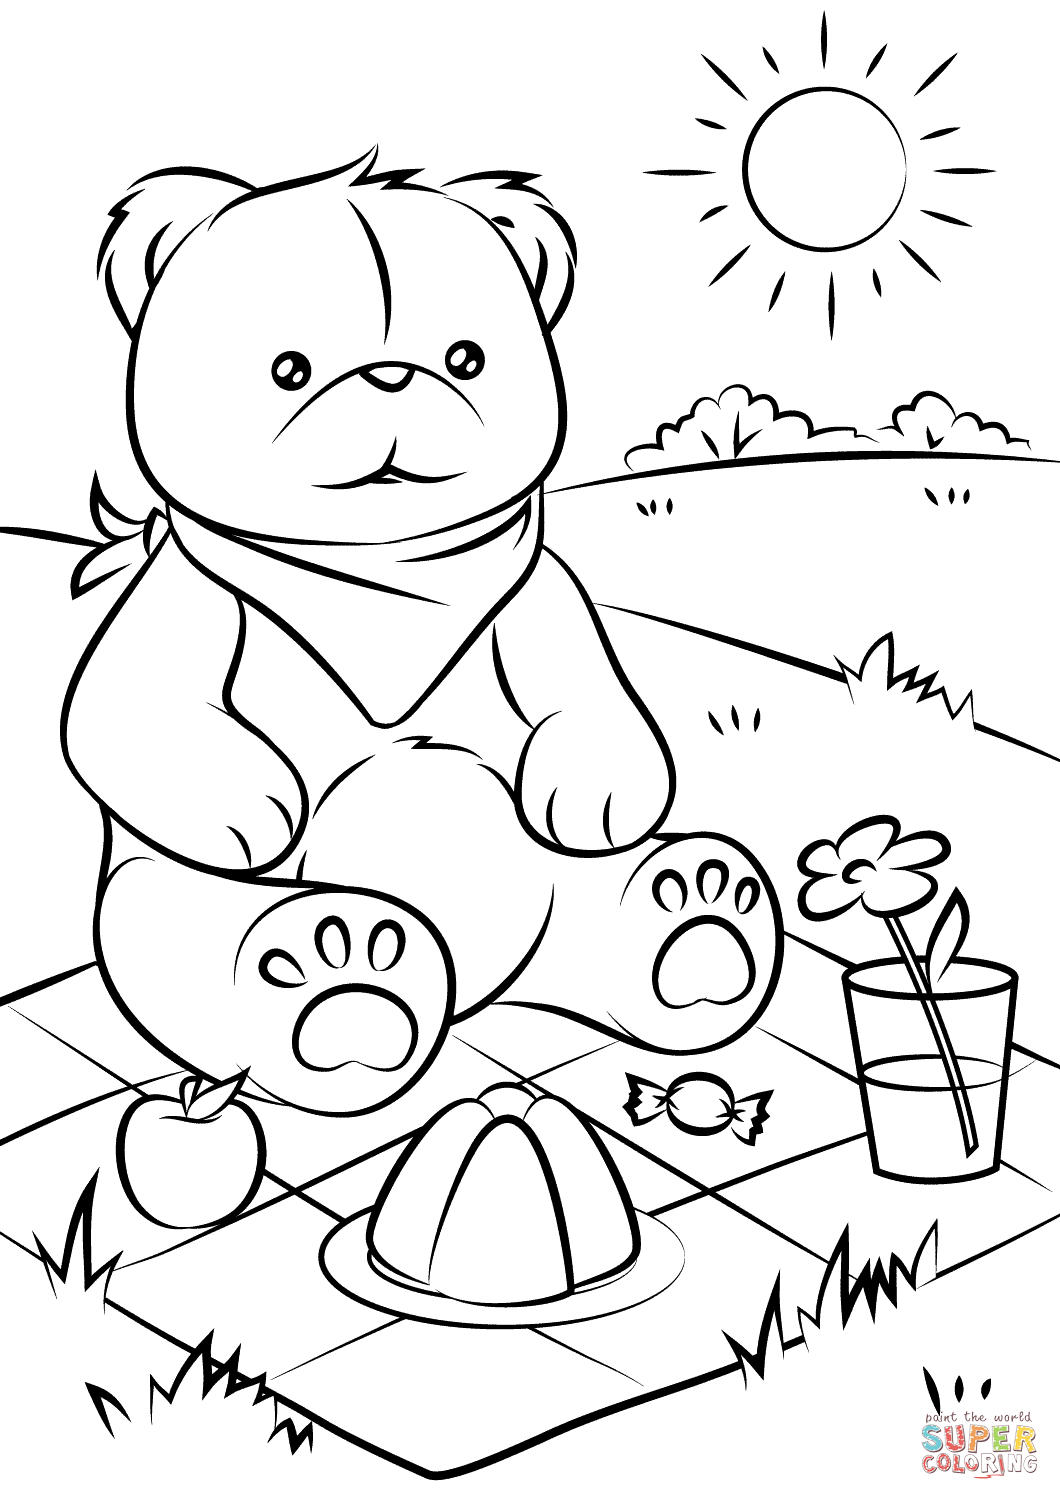 1060x1500 Coloring Page Teddy Bear Bears Picnic Free Printable Pages Arilitv